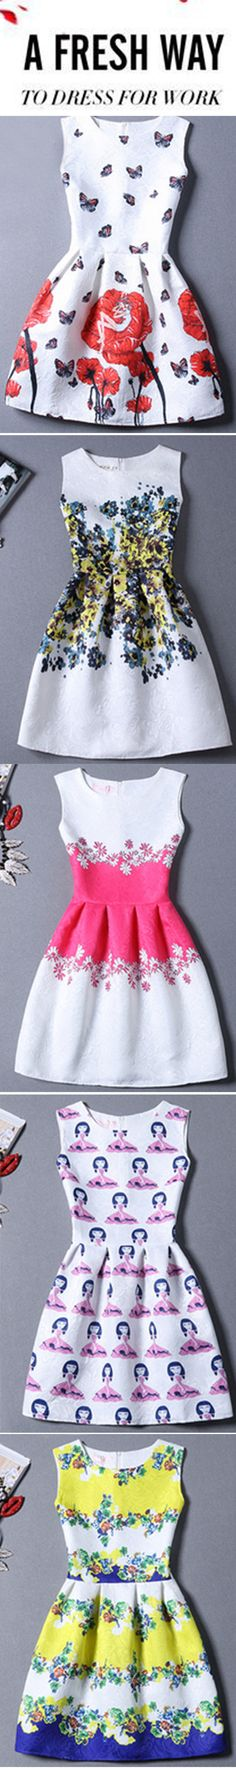 Cute dresses worth buying for dressing up&dressing down under $15. Pretty floral print little dress for girls. Fit a-line skater short dress for women. Perfect dress for school & date. Find more at romwe.com.